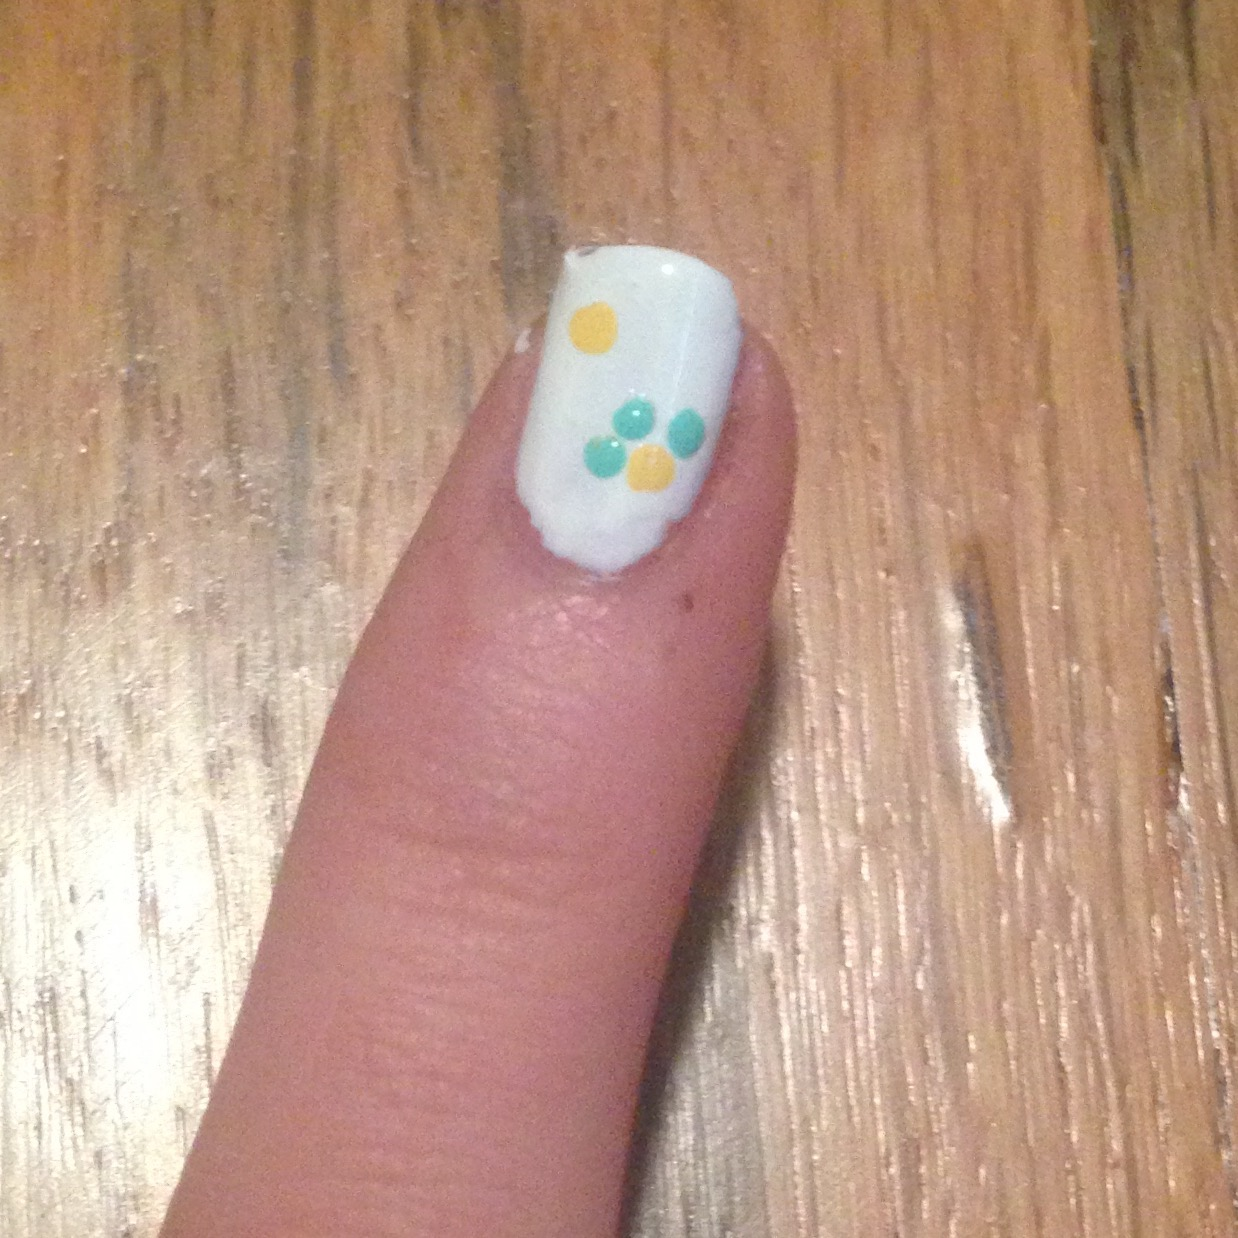 How To Make A Flower Nail Design 9 Steps With Pictures Instructables